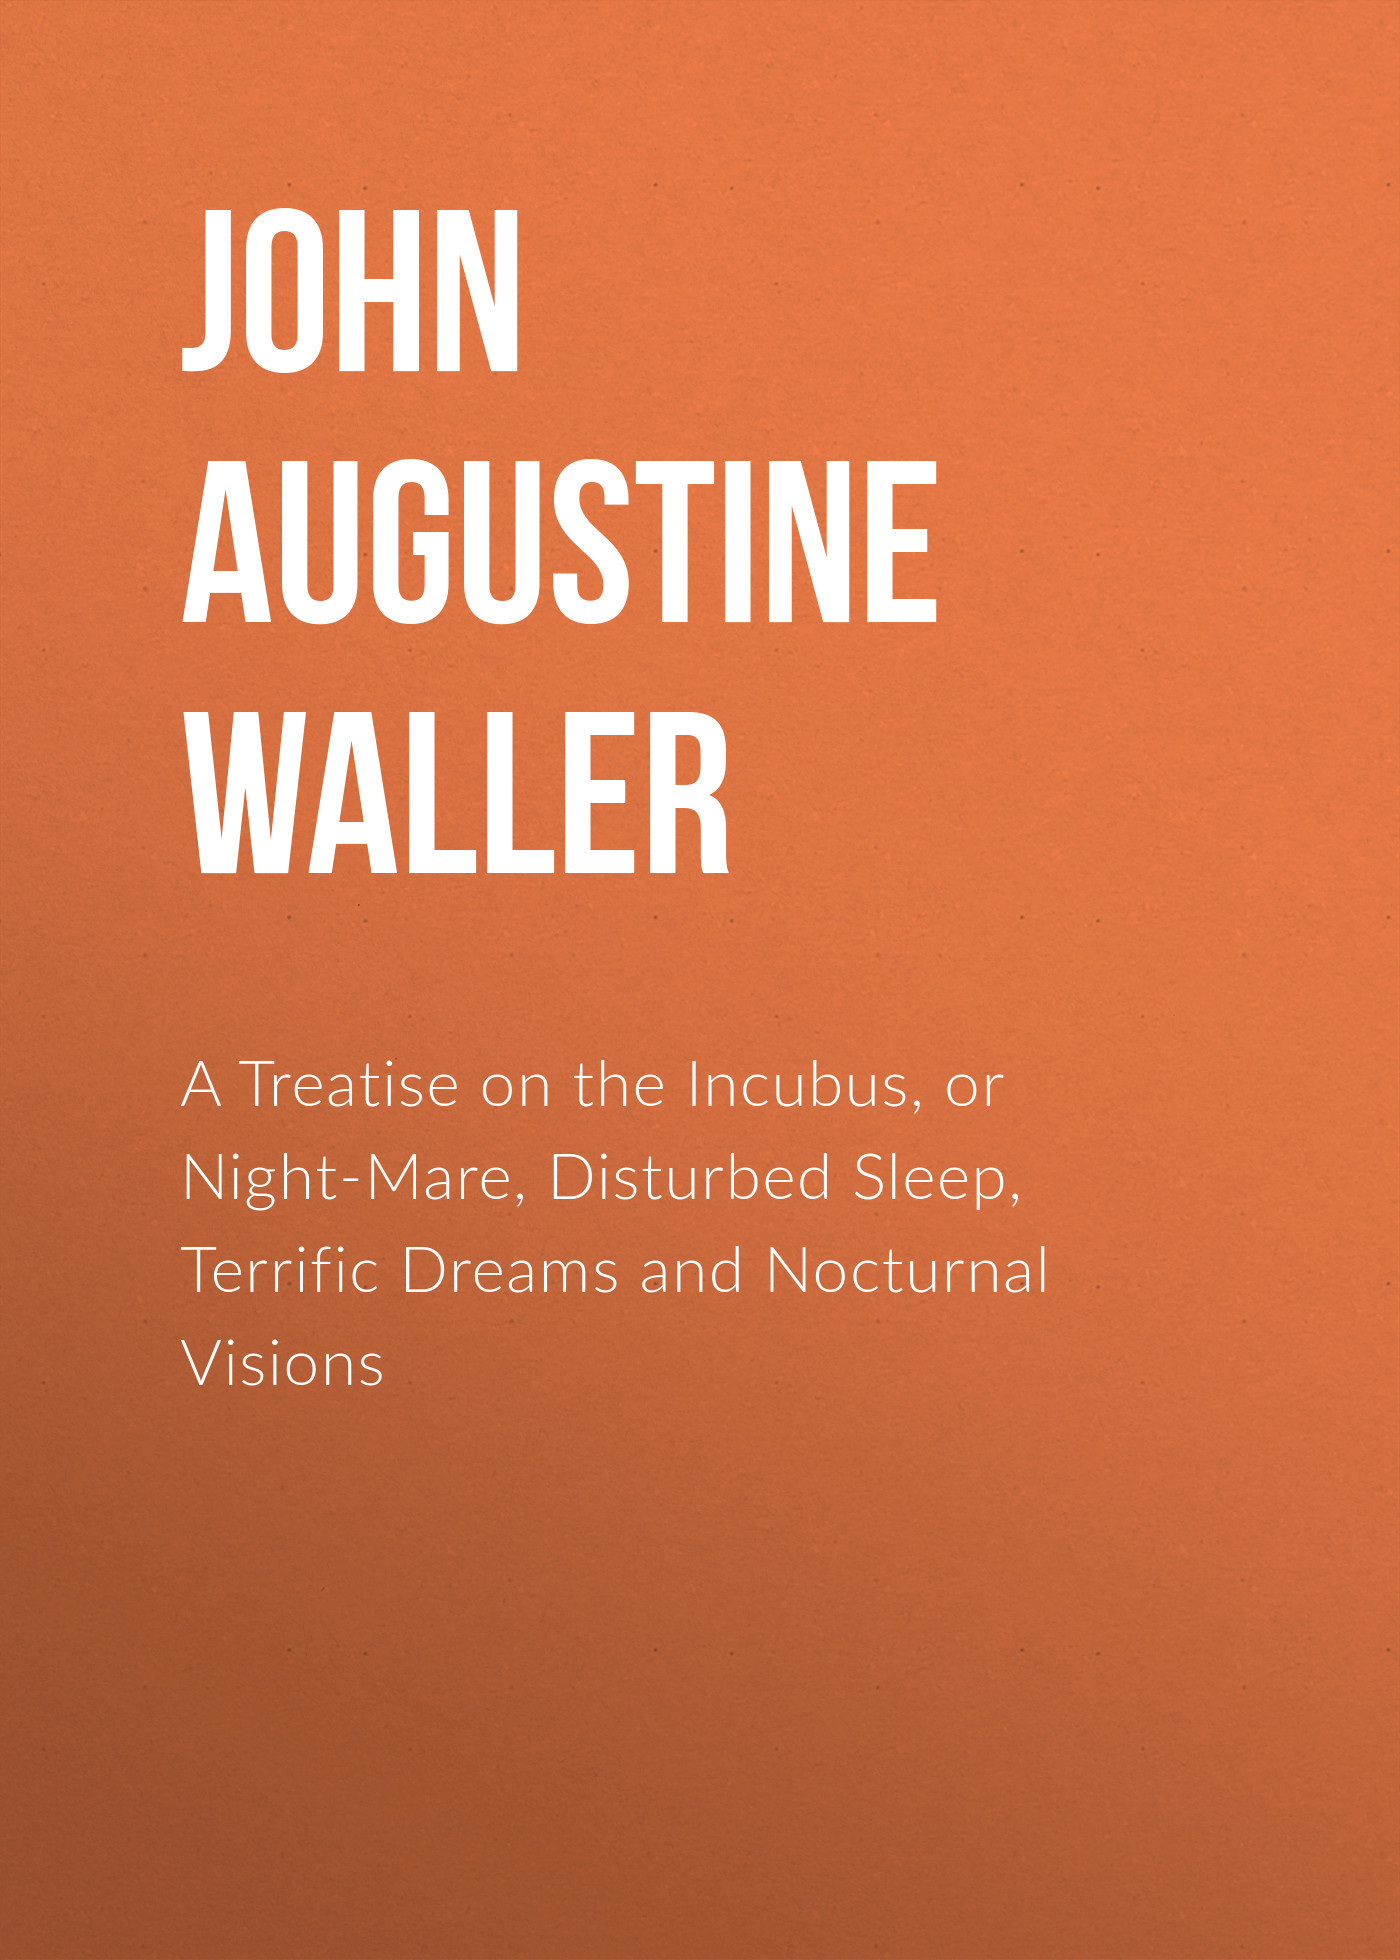 John Augustine Waller A Treatise on the Incubus, or Night-Mare, Disturbed Sleep, Terrific Dreams and Nocturnal Visions john augustine waller a treatise on the incubus or night mare disturbed sleep terrific dreams and nocturnal visions